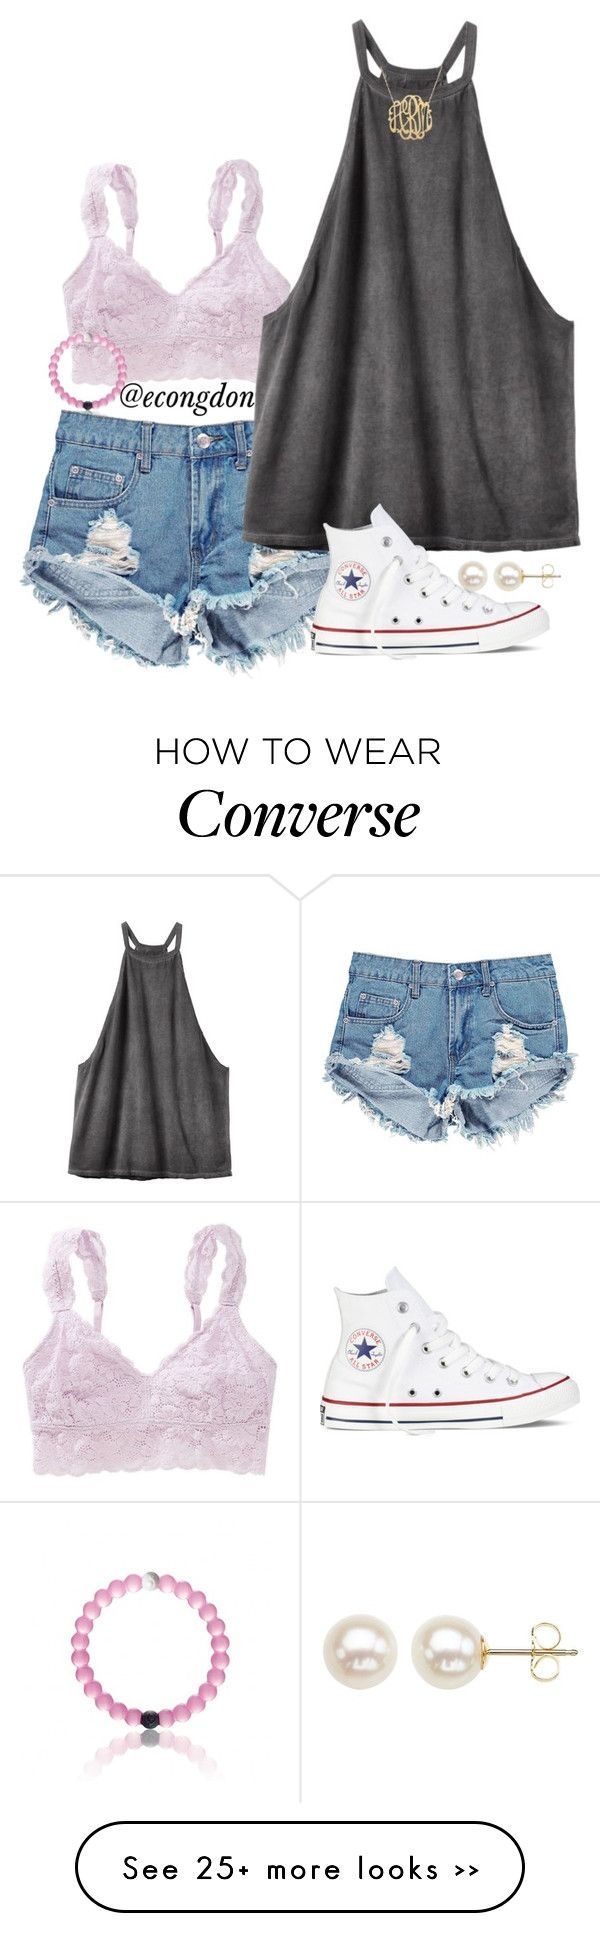 """day 14 of 365 happy days"" by econgdon on Polyvore featuring мода, Aerie, Honora, Boohoo, RVCA, Converse и 365happydays"